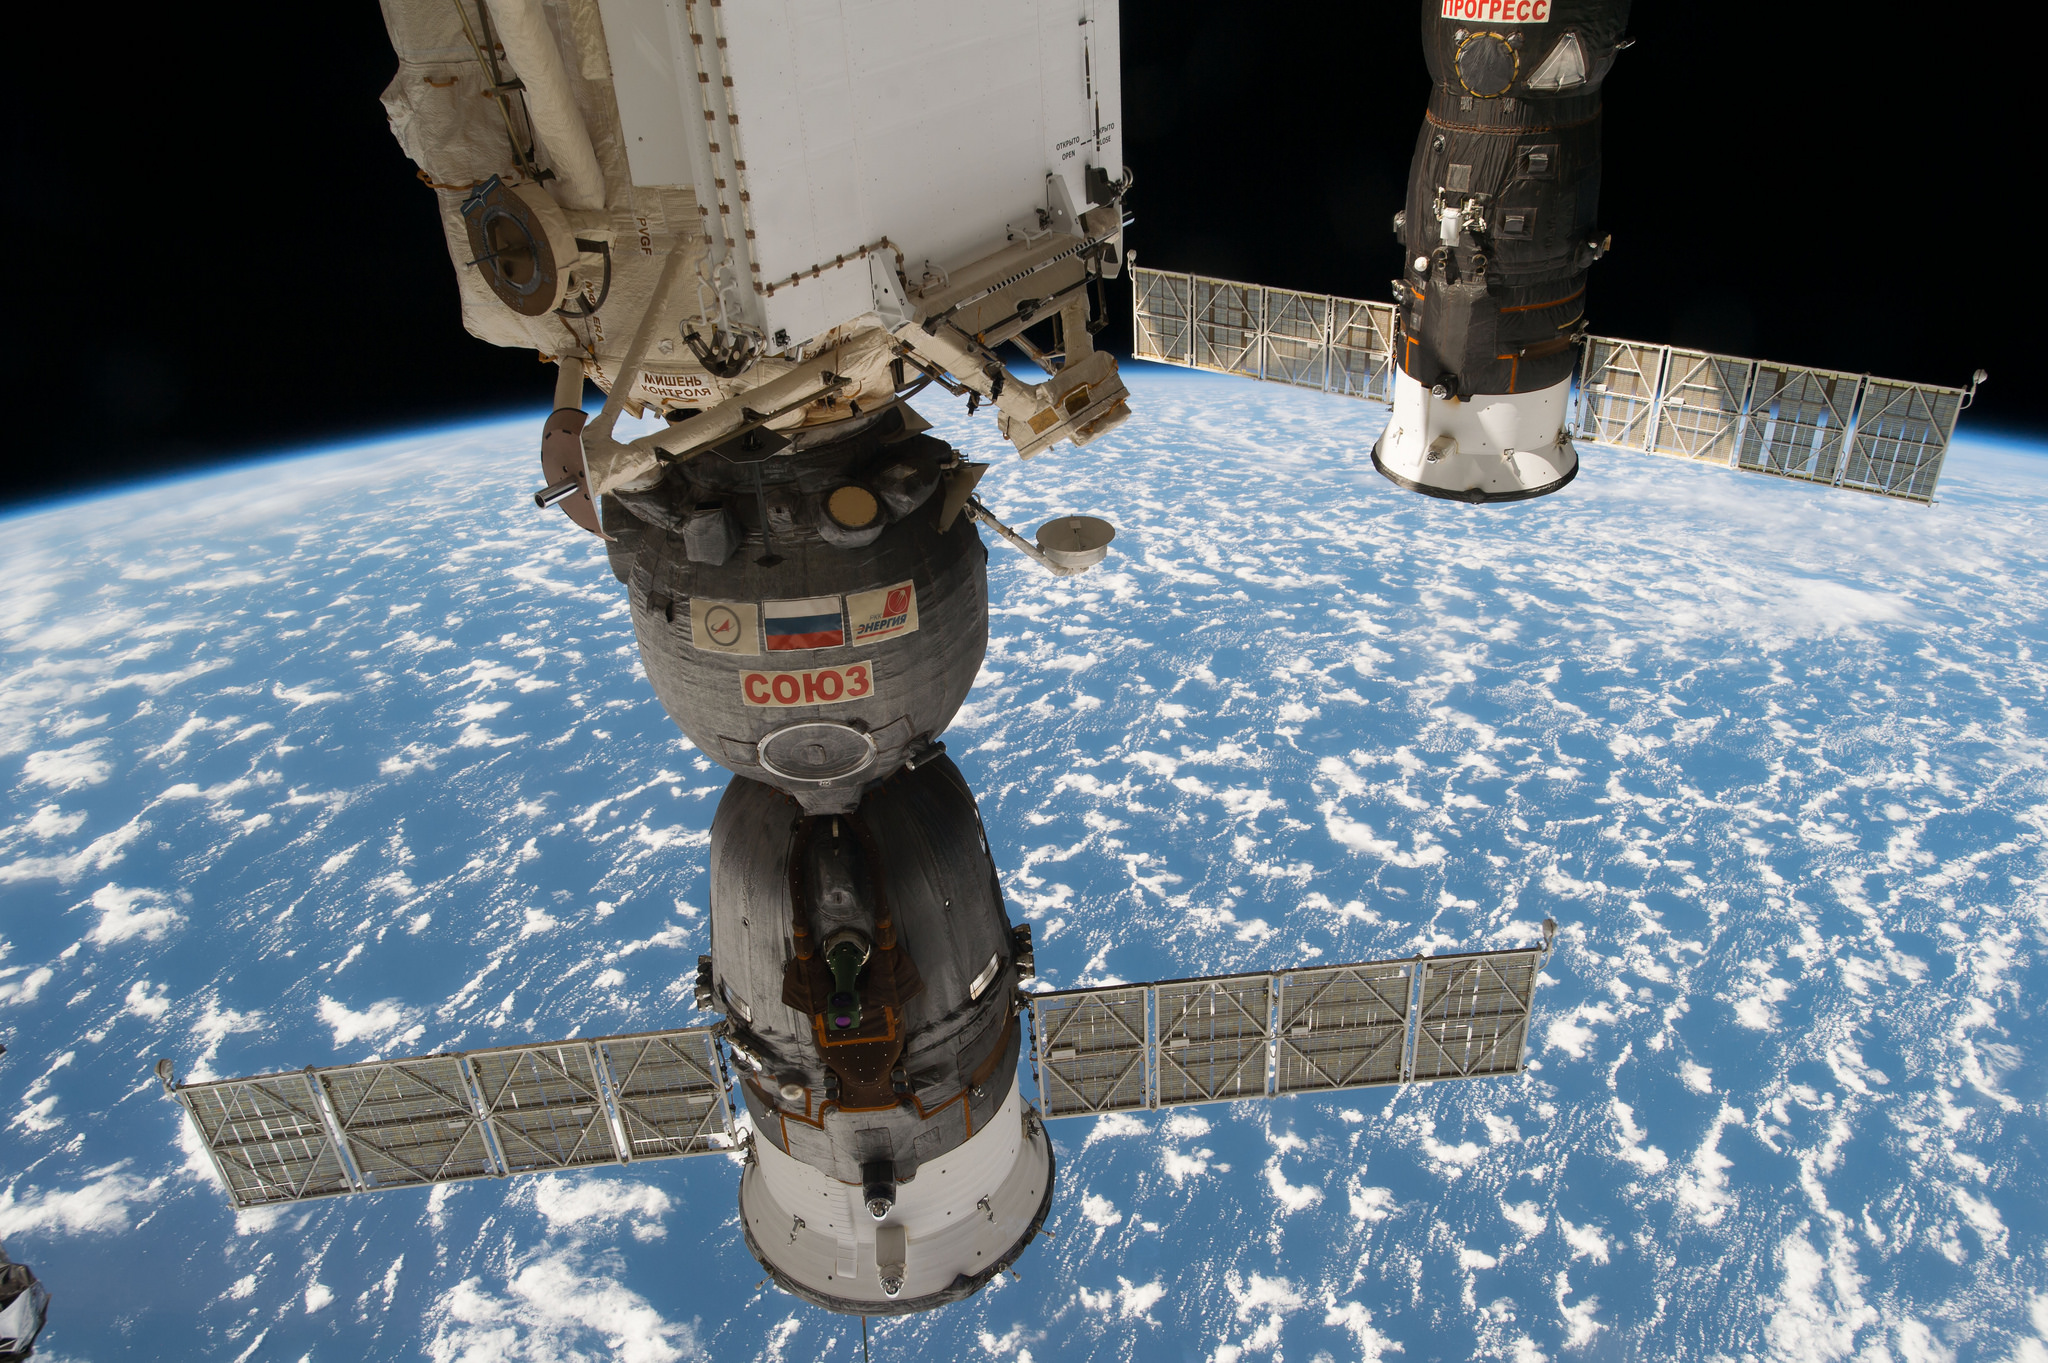 Docked Soyuz and Progress Vehicles